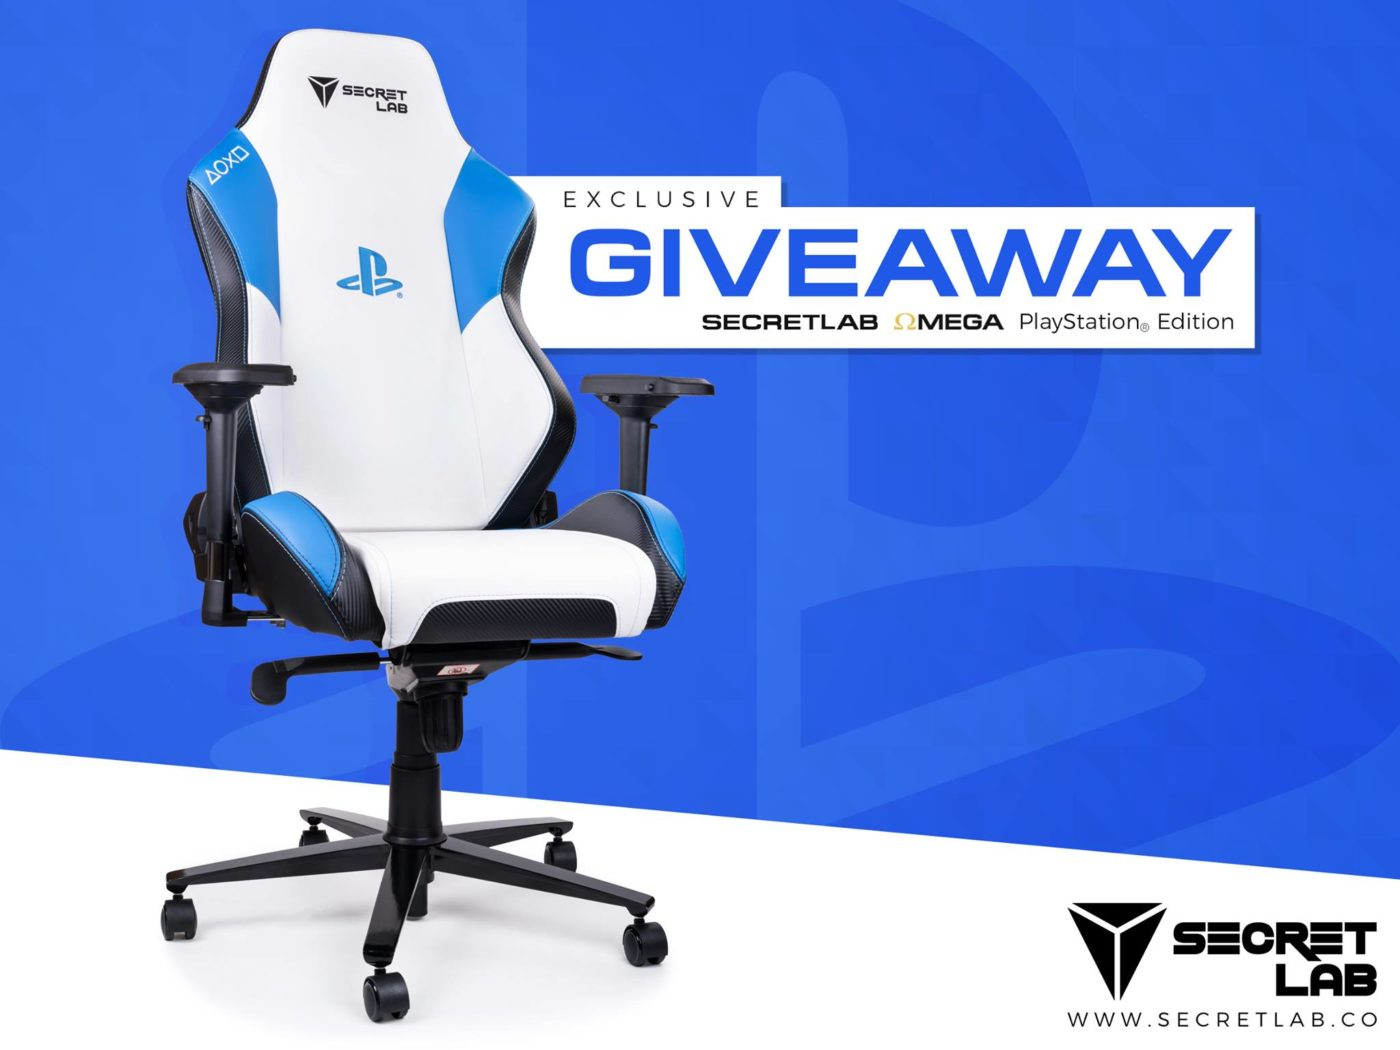 Peachy Secretlab Is Giving Away Two Playstation Omega Gaming Chairs Pdpeps Interior Chair Design Pdpepsorg